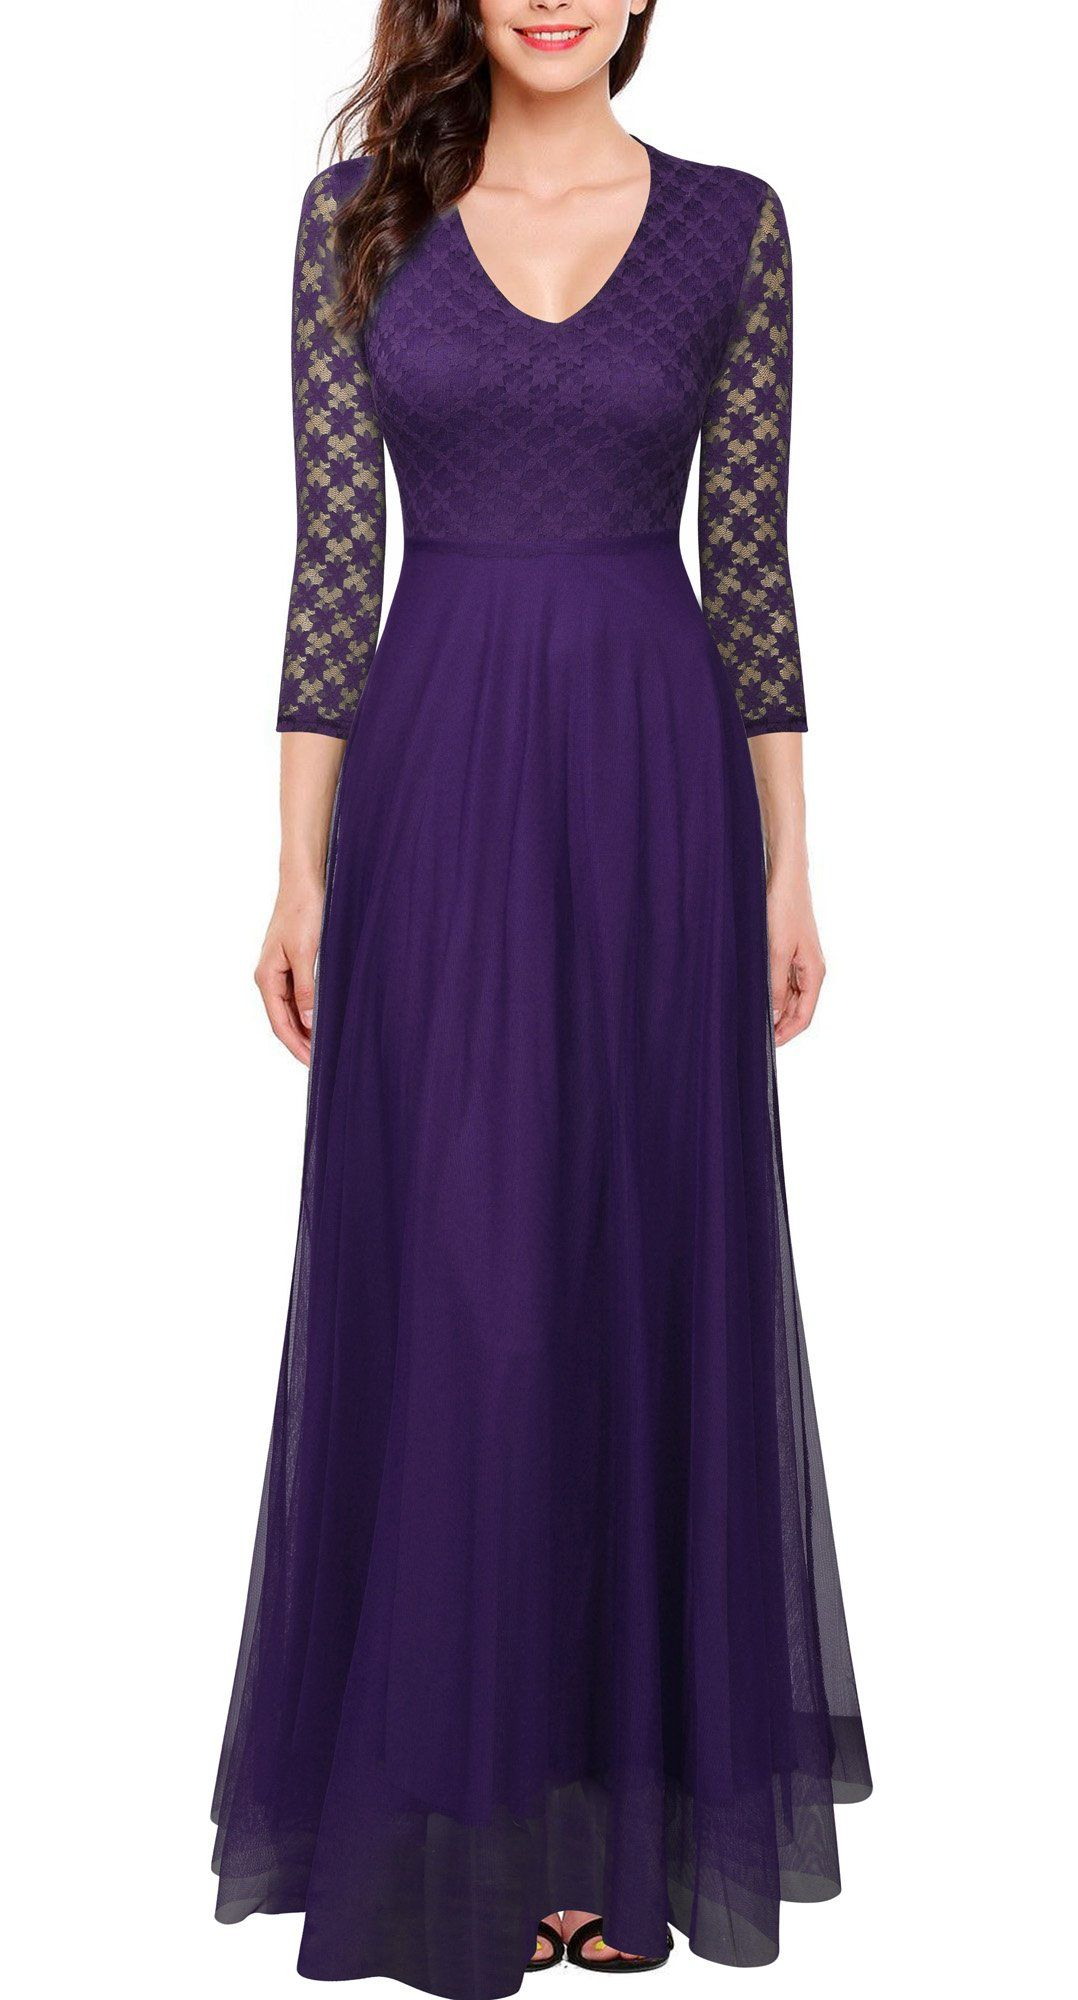 FORTRIC Women 3/4 Sleeves Top Lace SeeThrough Back Wedding